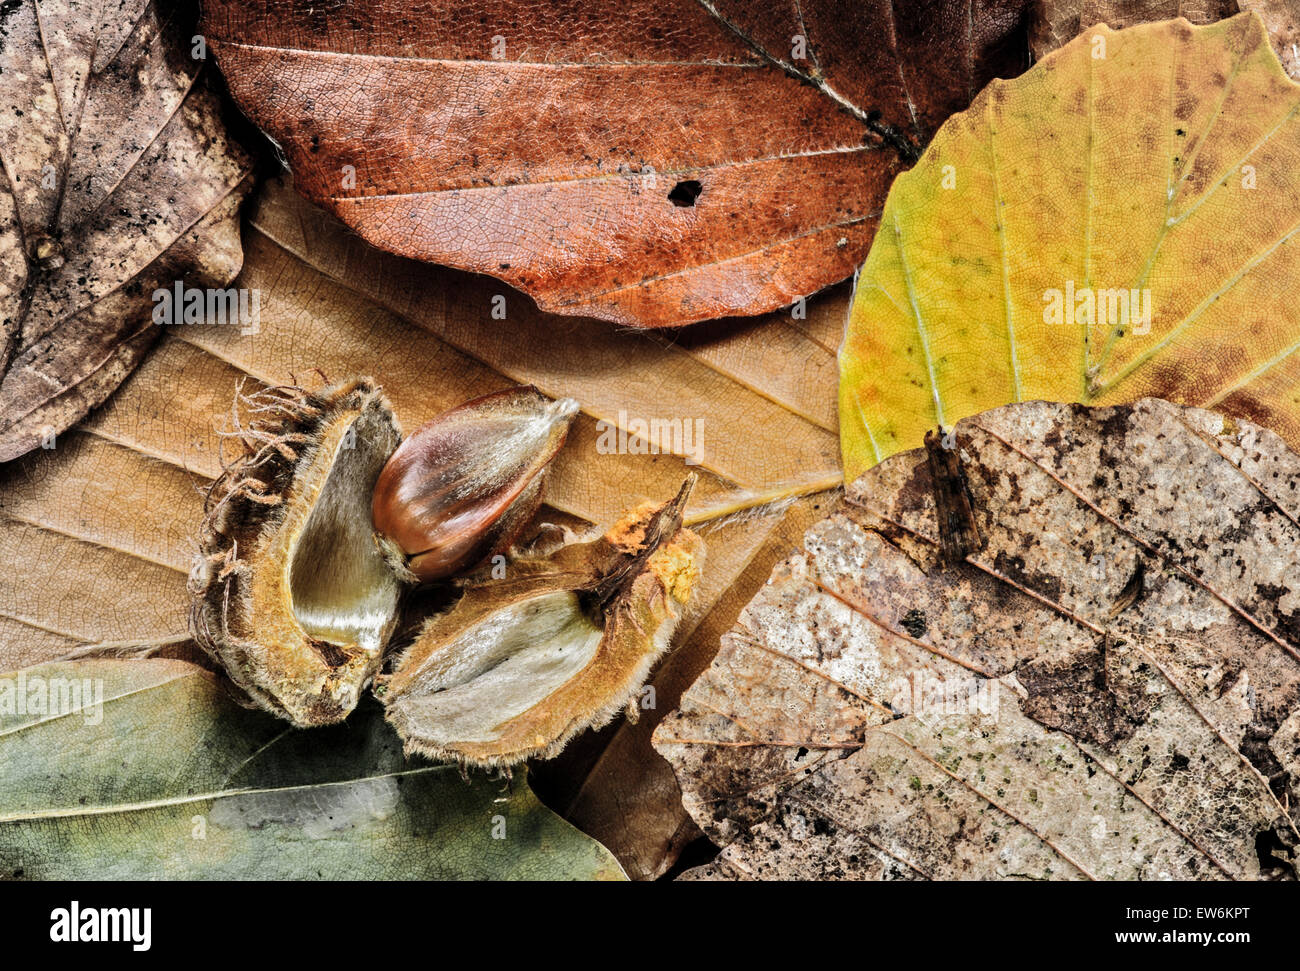 Beech nut and leaves - Stock Image